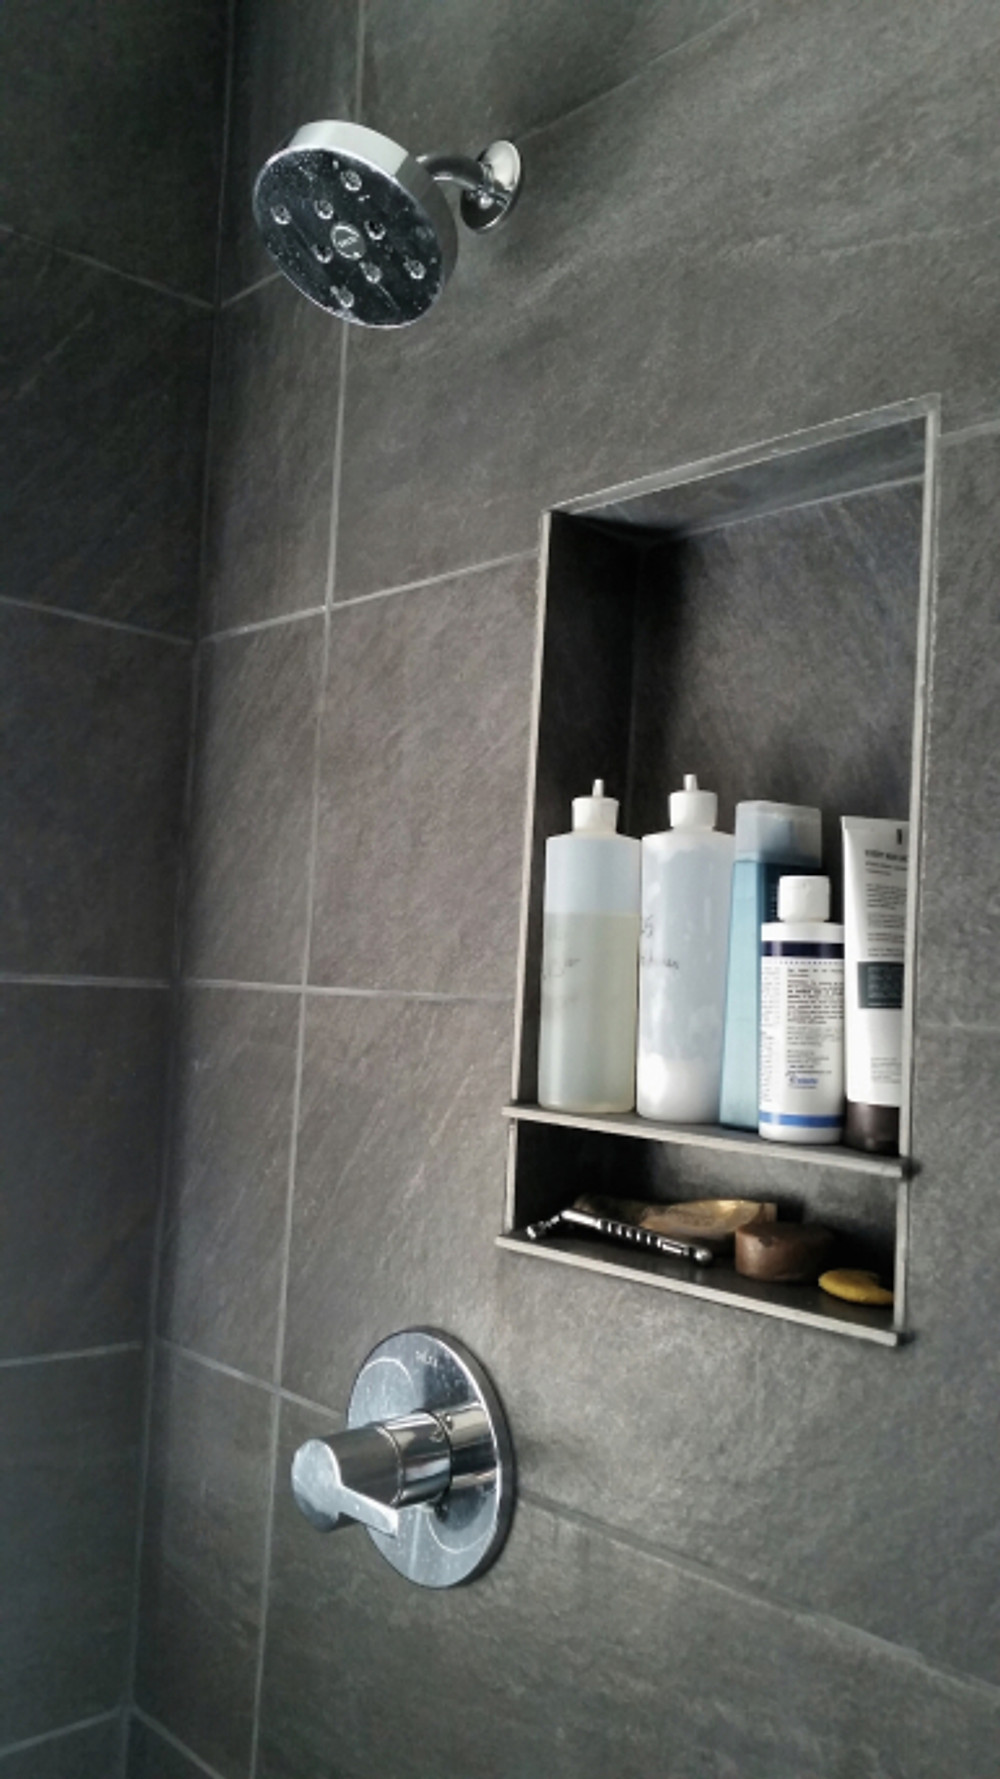 The new shower fixtures we love and the water flow is dreamy (and yet still energy efficient, yeah baybeeee!). Also had our GC carve out this cubby for our shampoo, etc. (mine are obviously the ones in the bulk bottles, not as pretty...), and a smaller one for the razor/soap. Love the little details! I almost had him do two but realized we're pretty simple and don't have a lot of stuff.